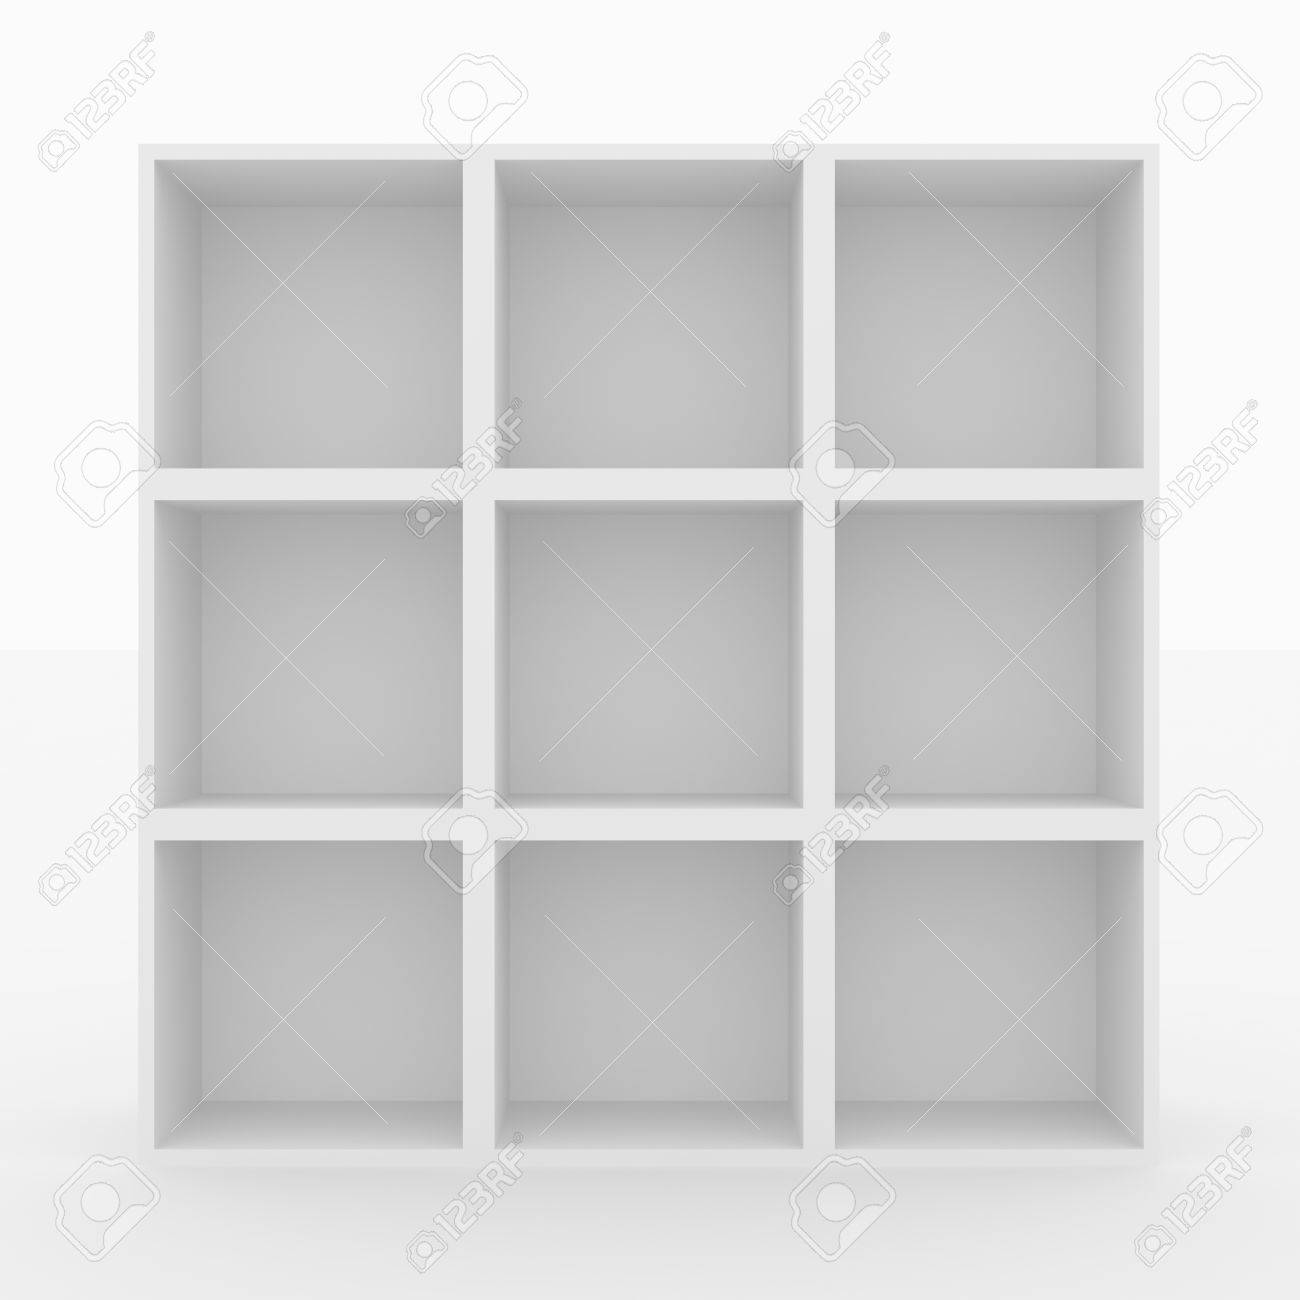 empty white bookshelf isolated on white d render image stock  - empty white bookshelf isolated on white d render image stock photo